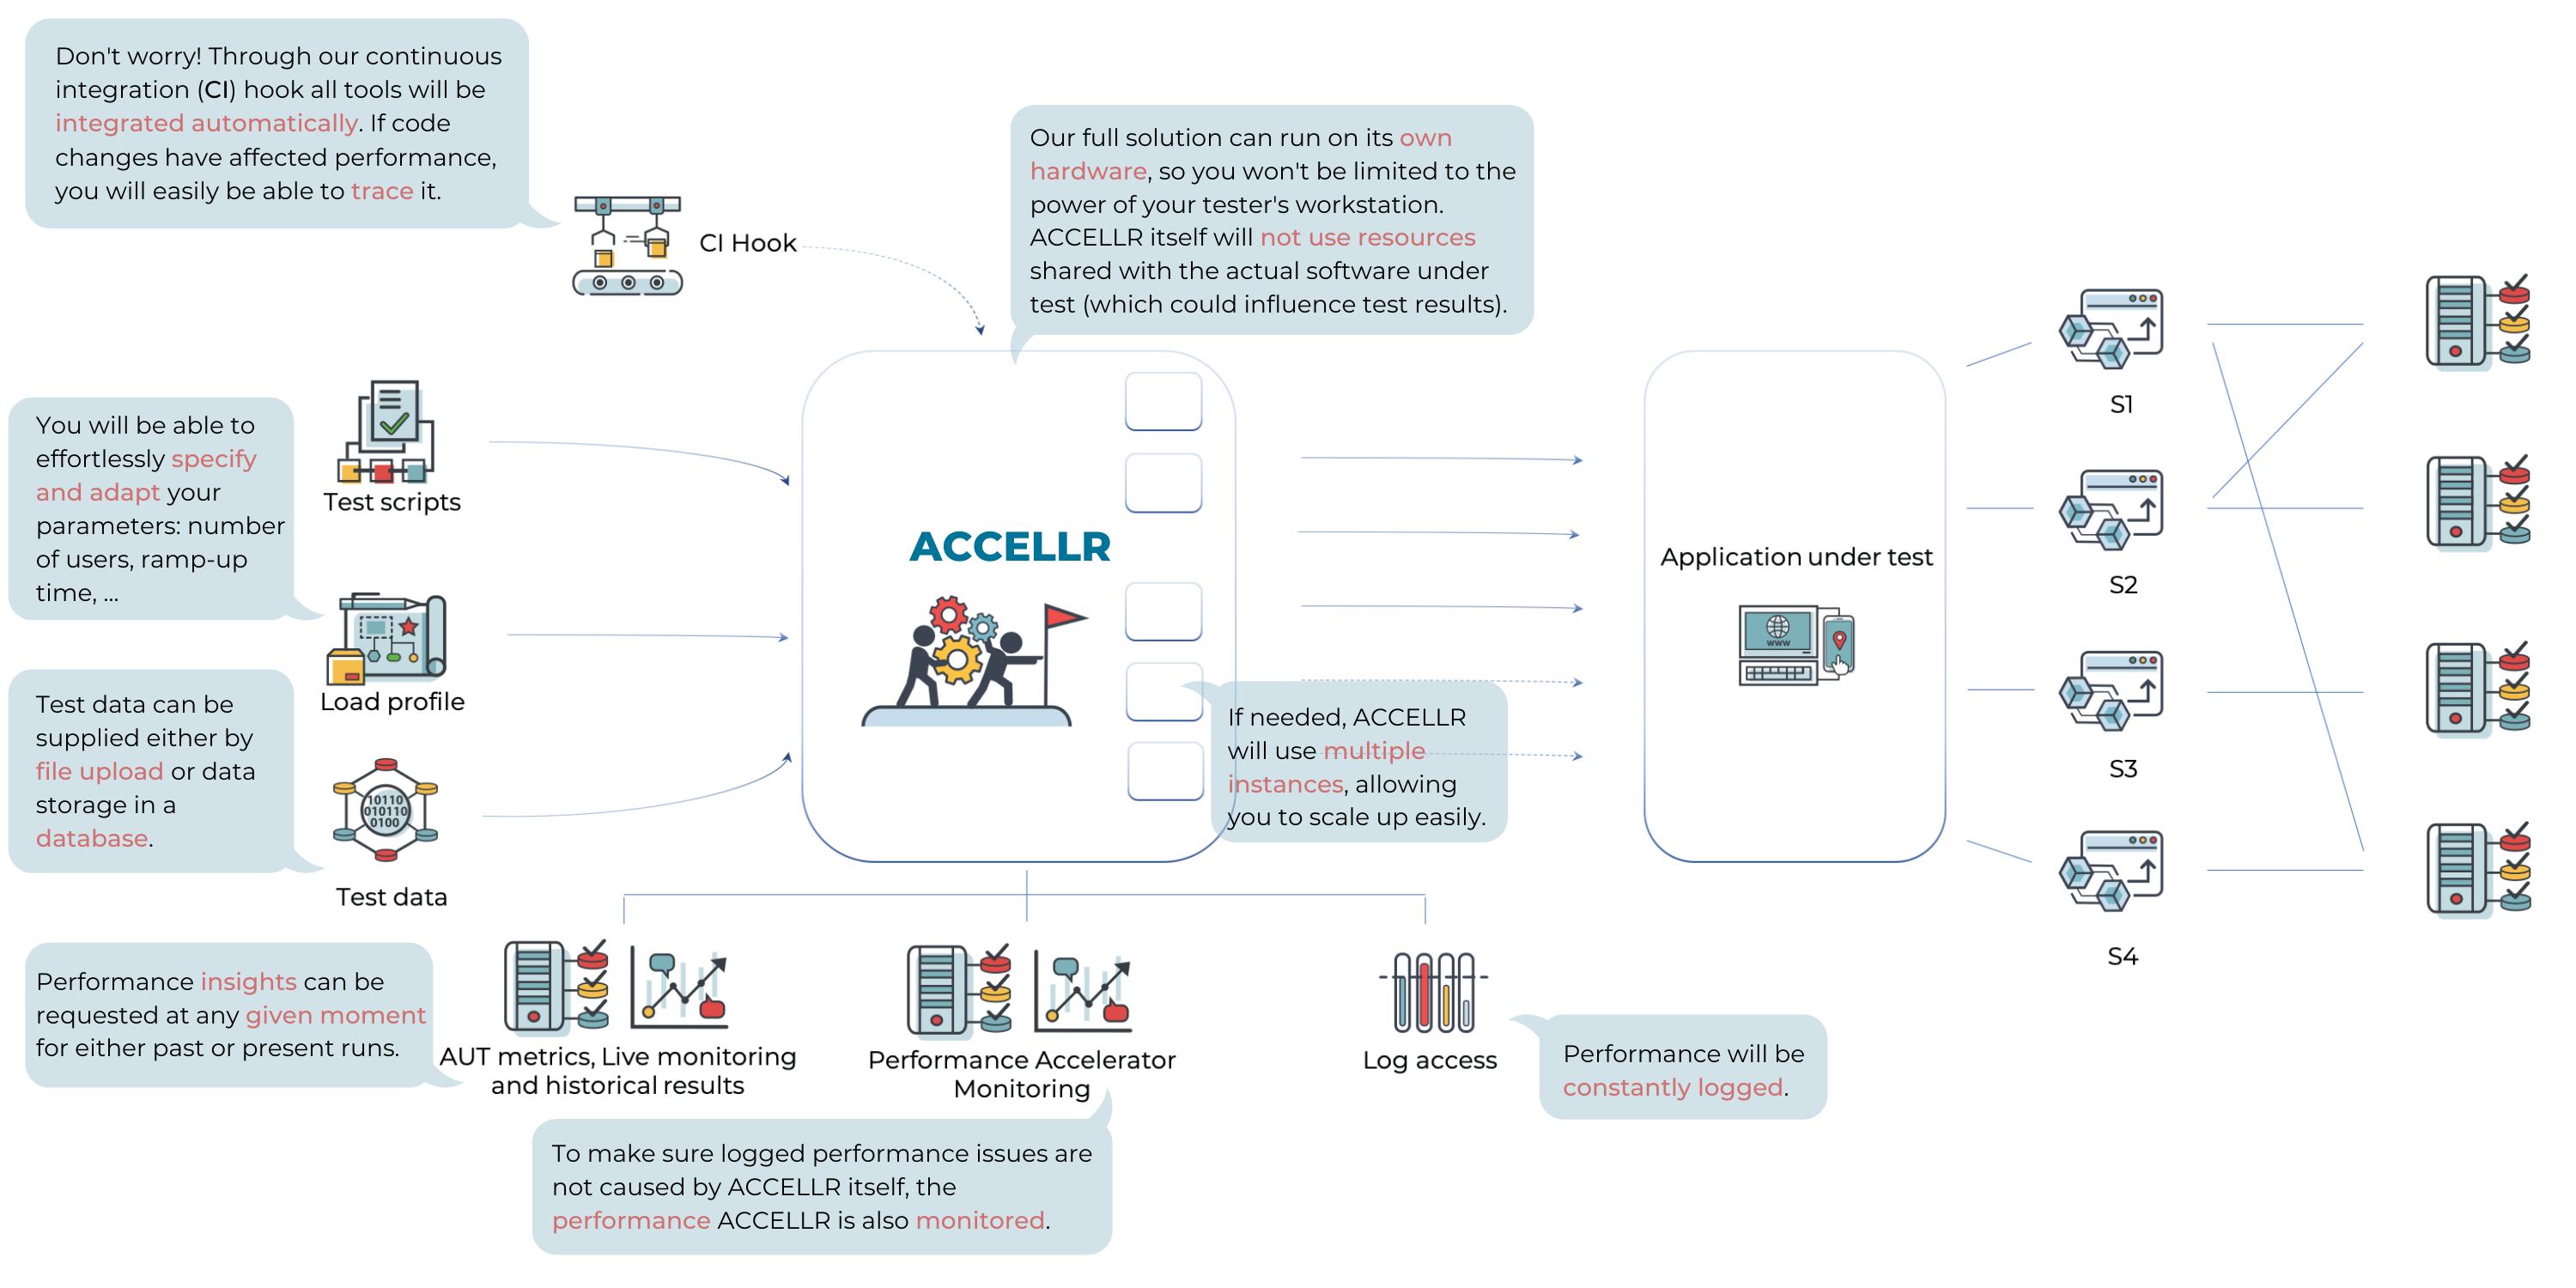 ACCELLR_Figure_Explained